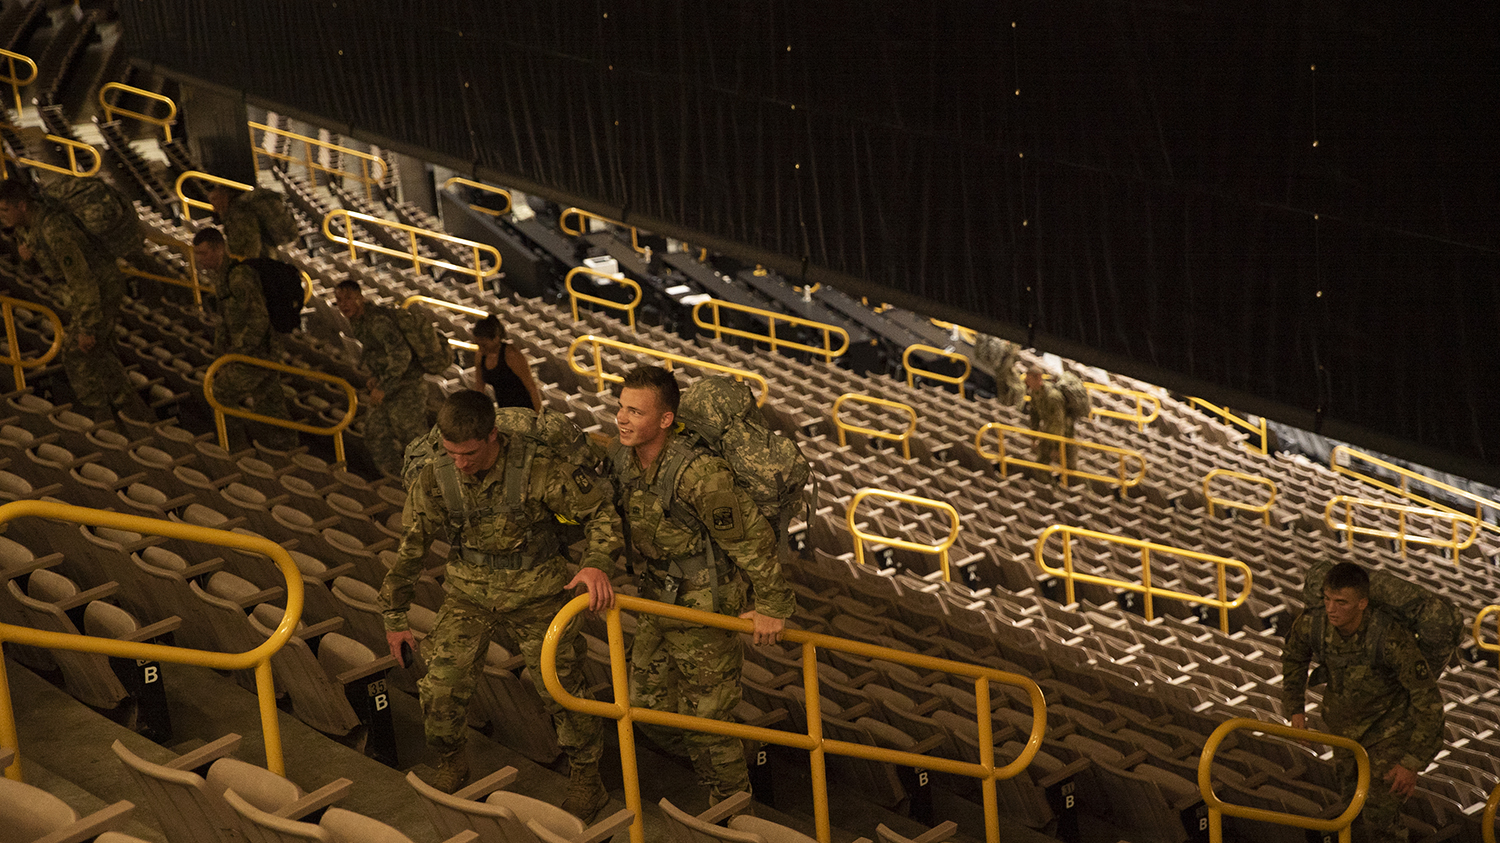 UI ROTC students participate in the 9/11 Memorial Run in Carver Hawkeye Arena, on Wednesday, September 11th, 2019. In rememberance of the lives of first responders and servicemen lost in the events of and succeeding the 9/11 terrorist attacks, the UI ROTC program puts on a stair climb each year.. (Tate Hildyard/The Daily Iowan).